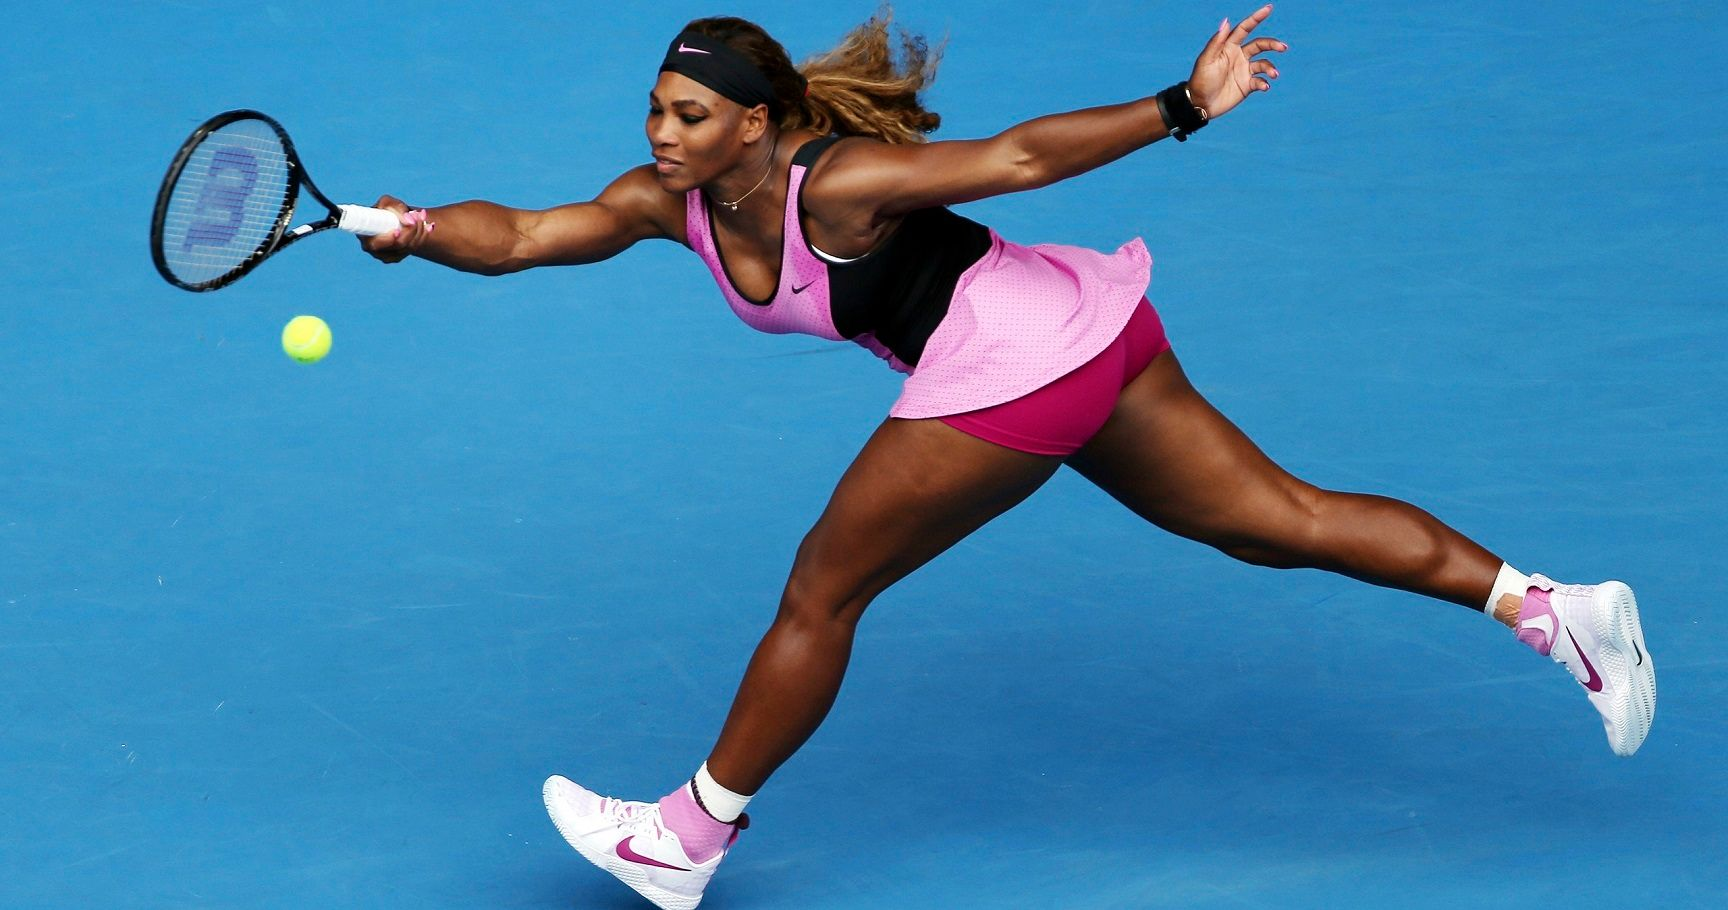 The 10 Most Popular Female Athletes in America for 2014